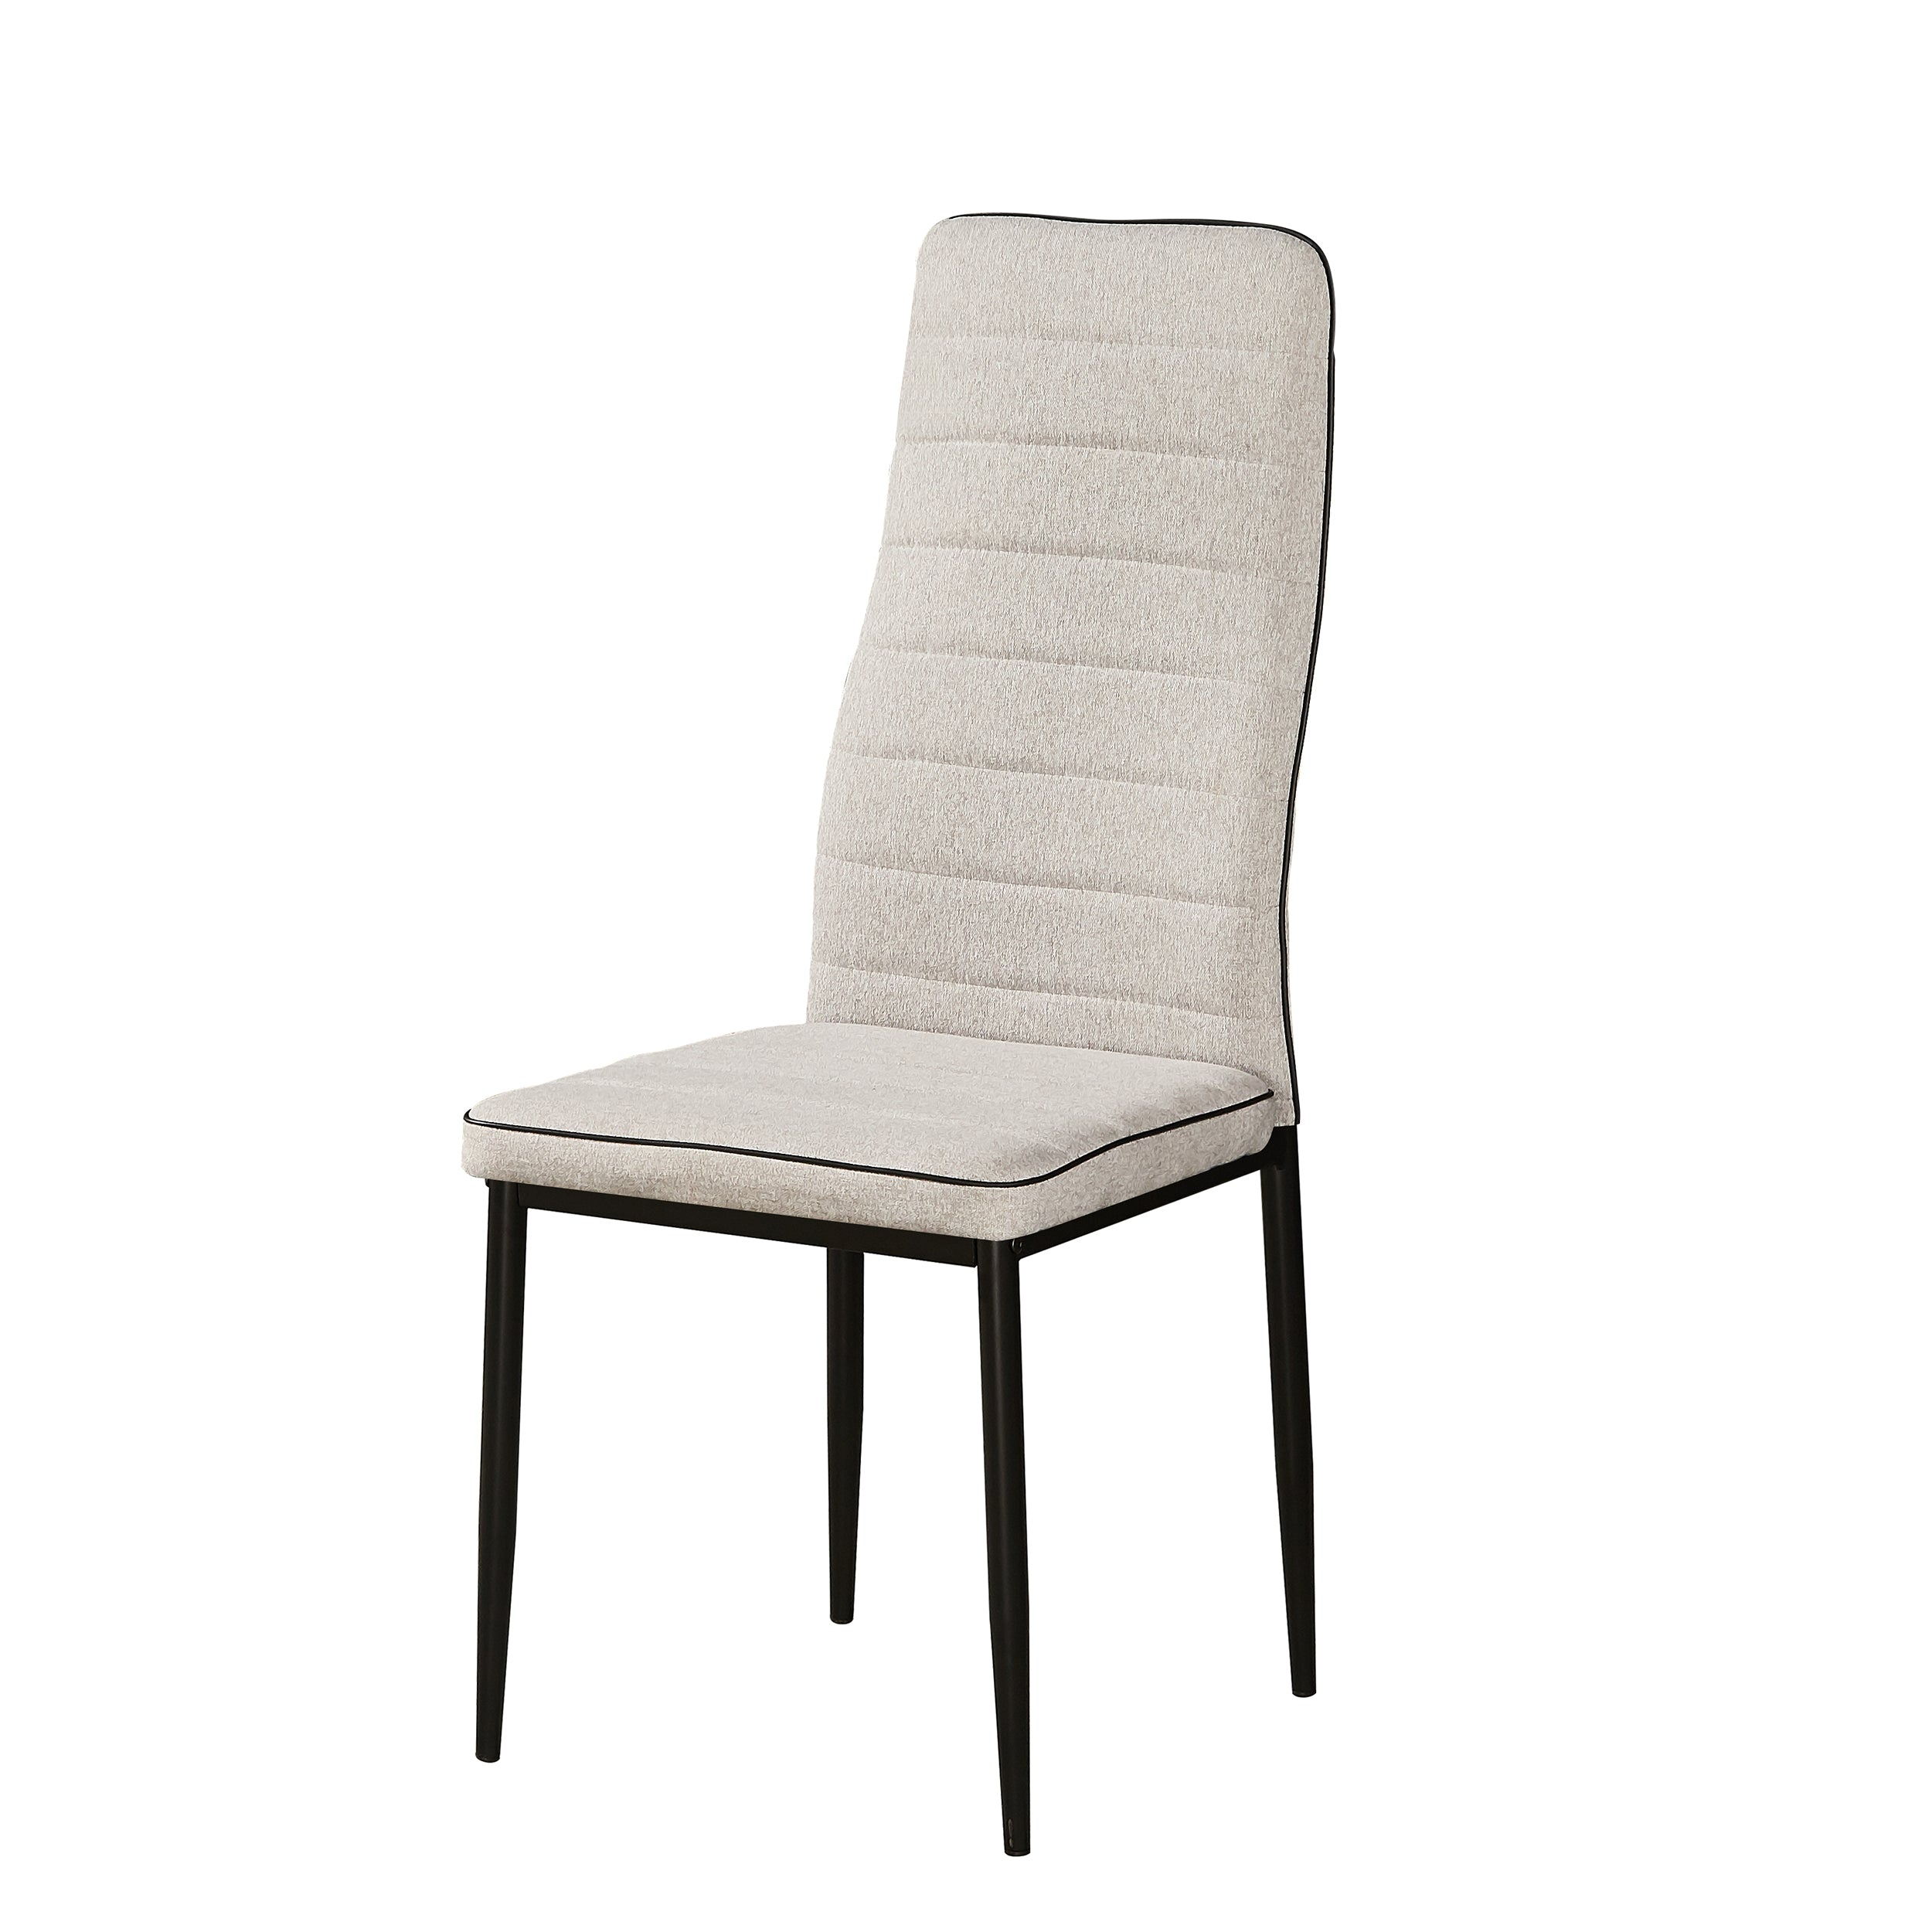 NERITA DINING CHAIR LIGHT GREY